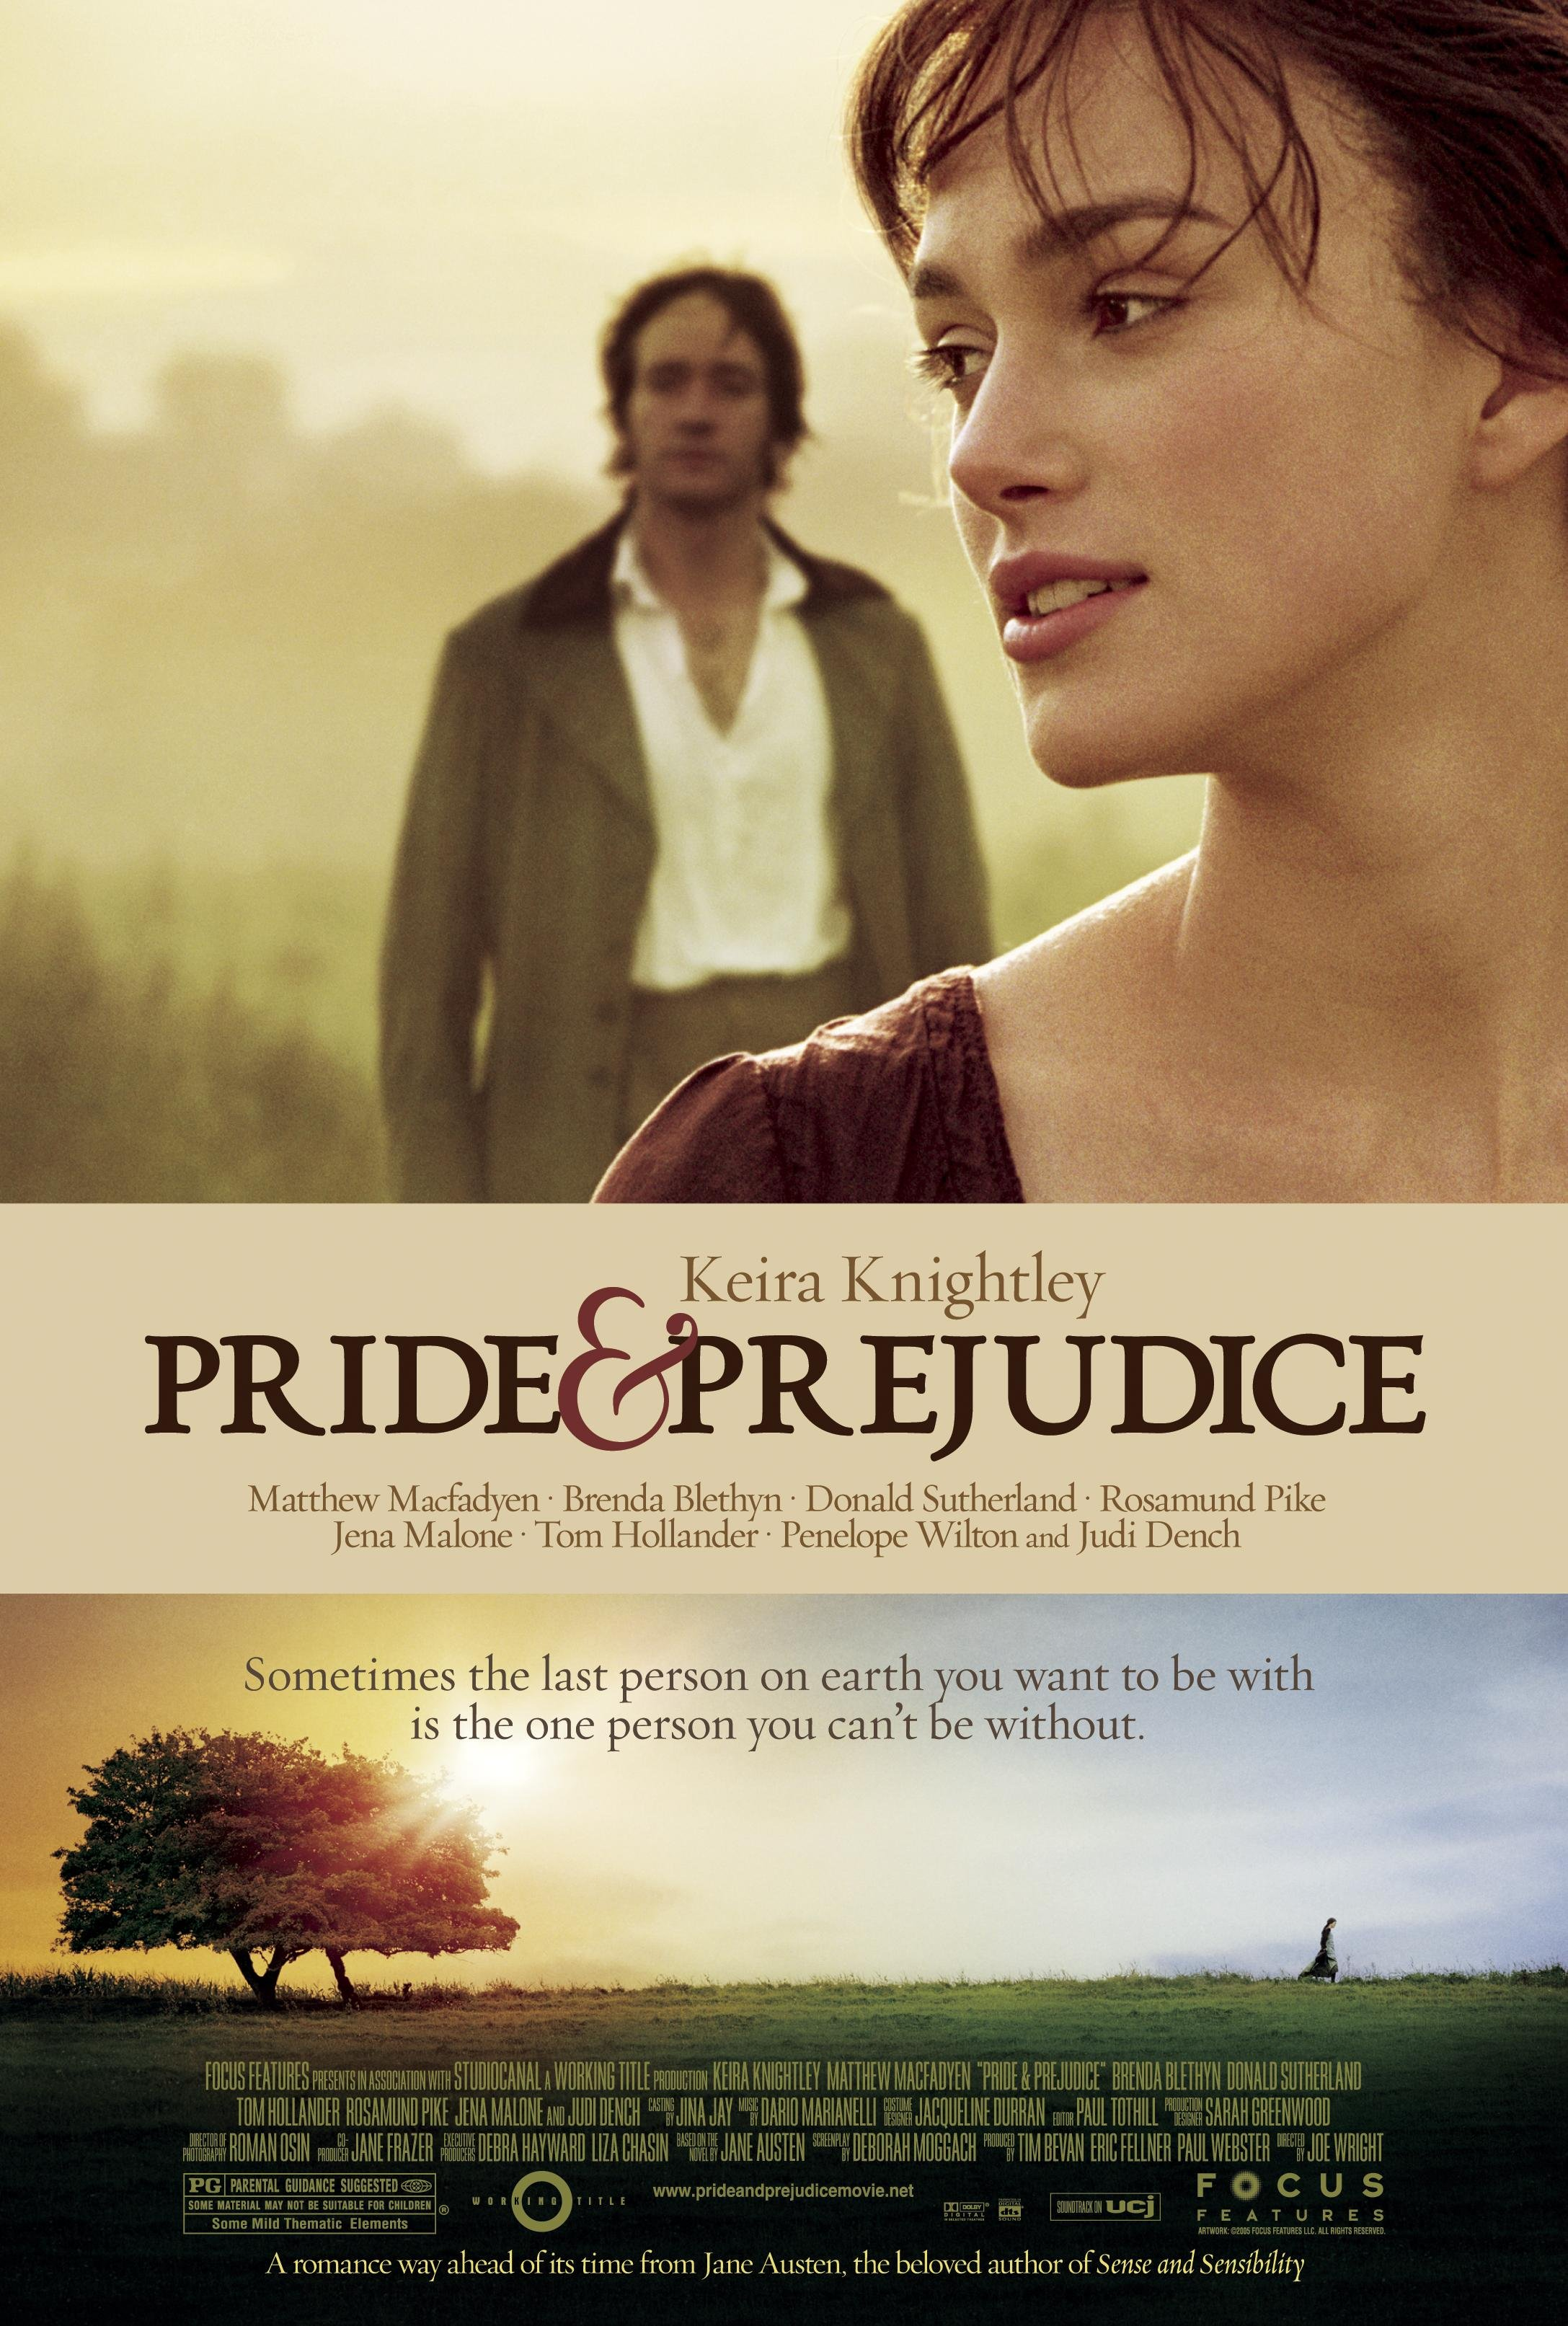 pride and prejudice summary